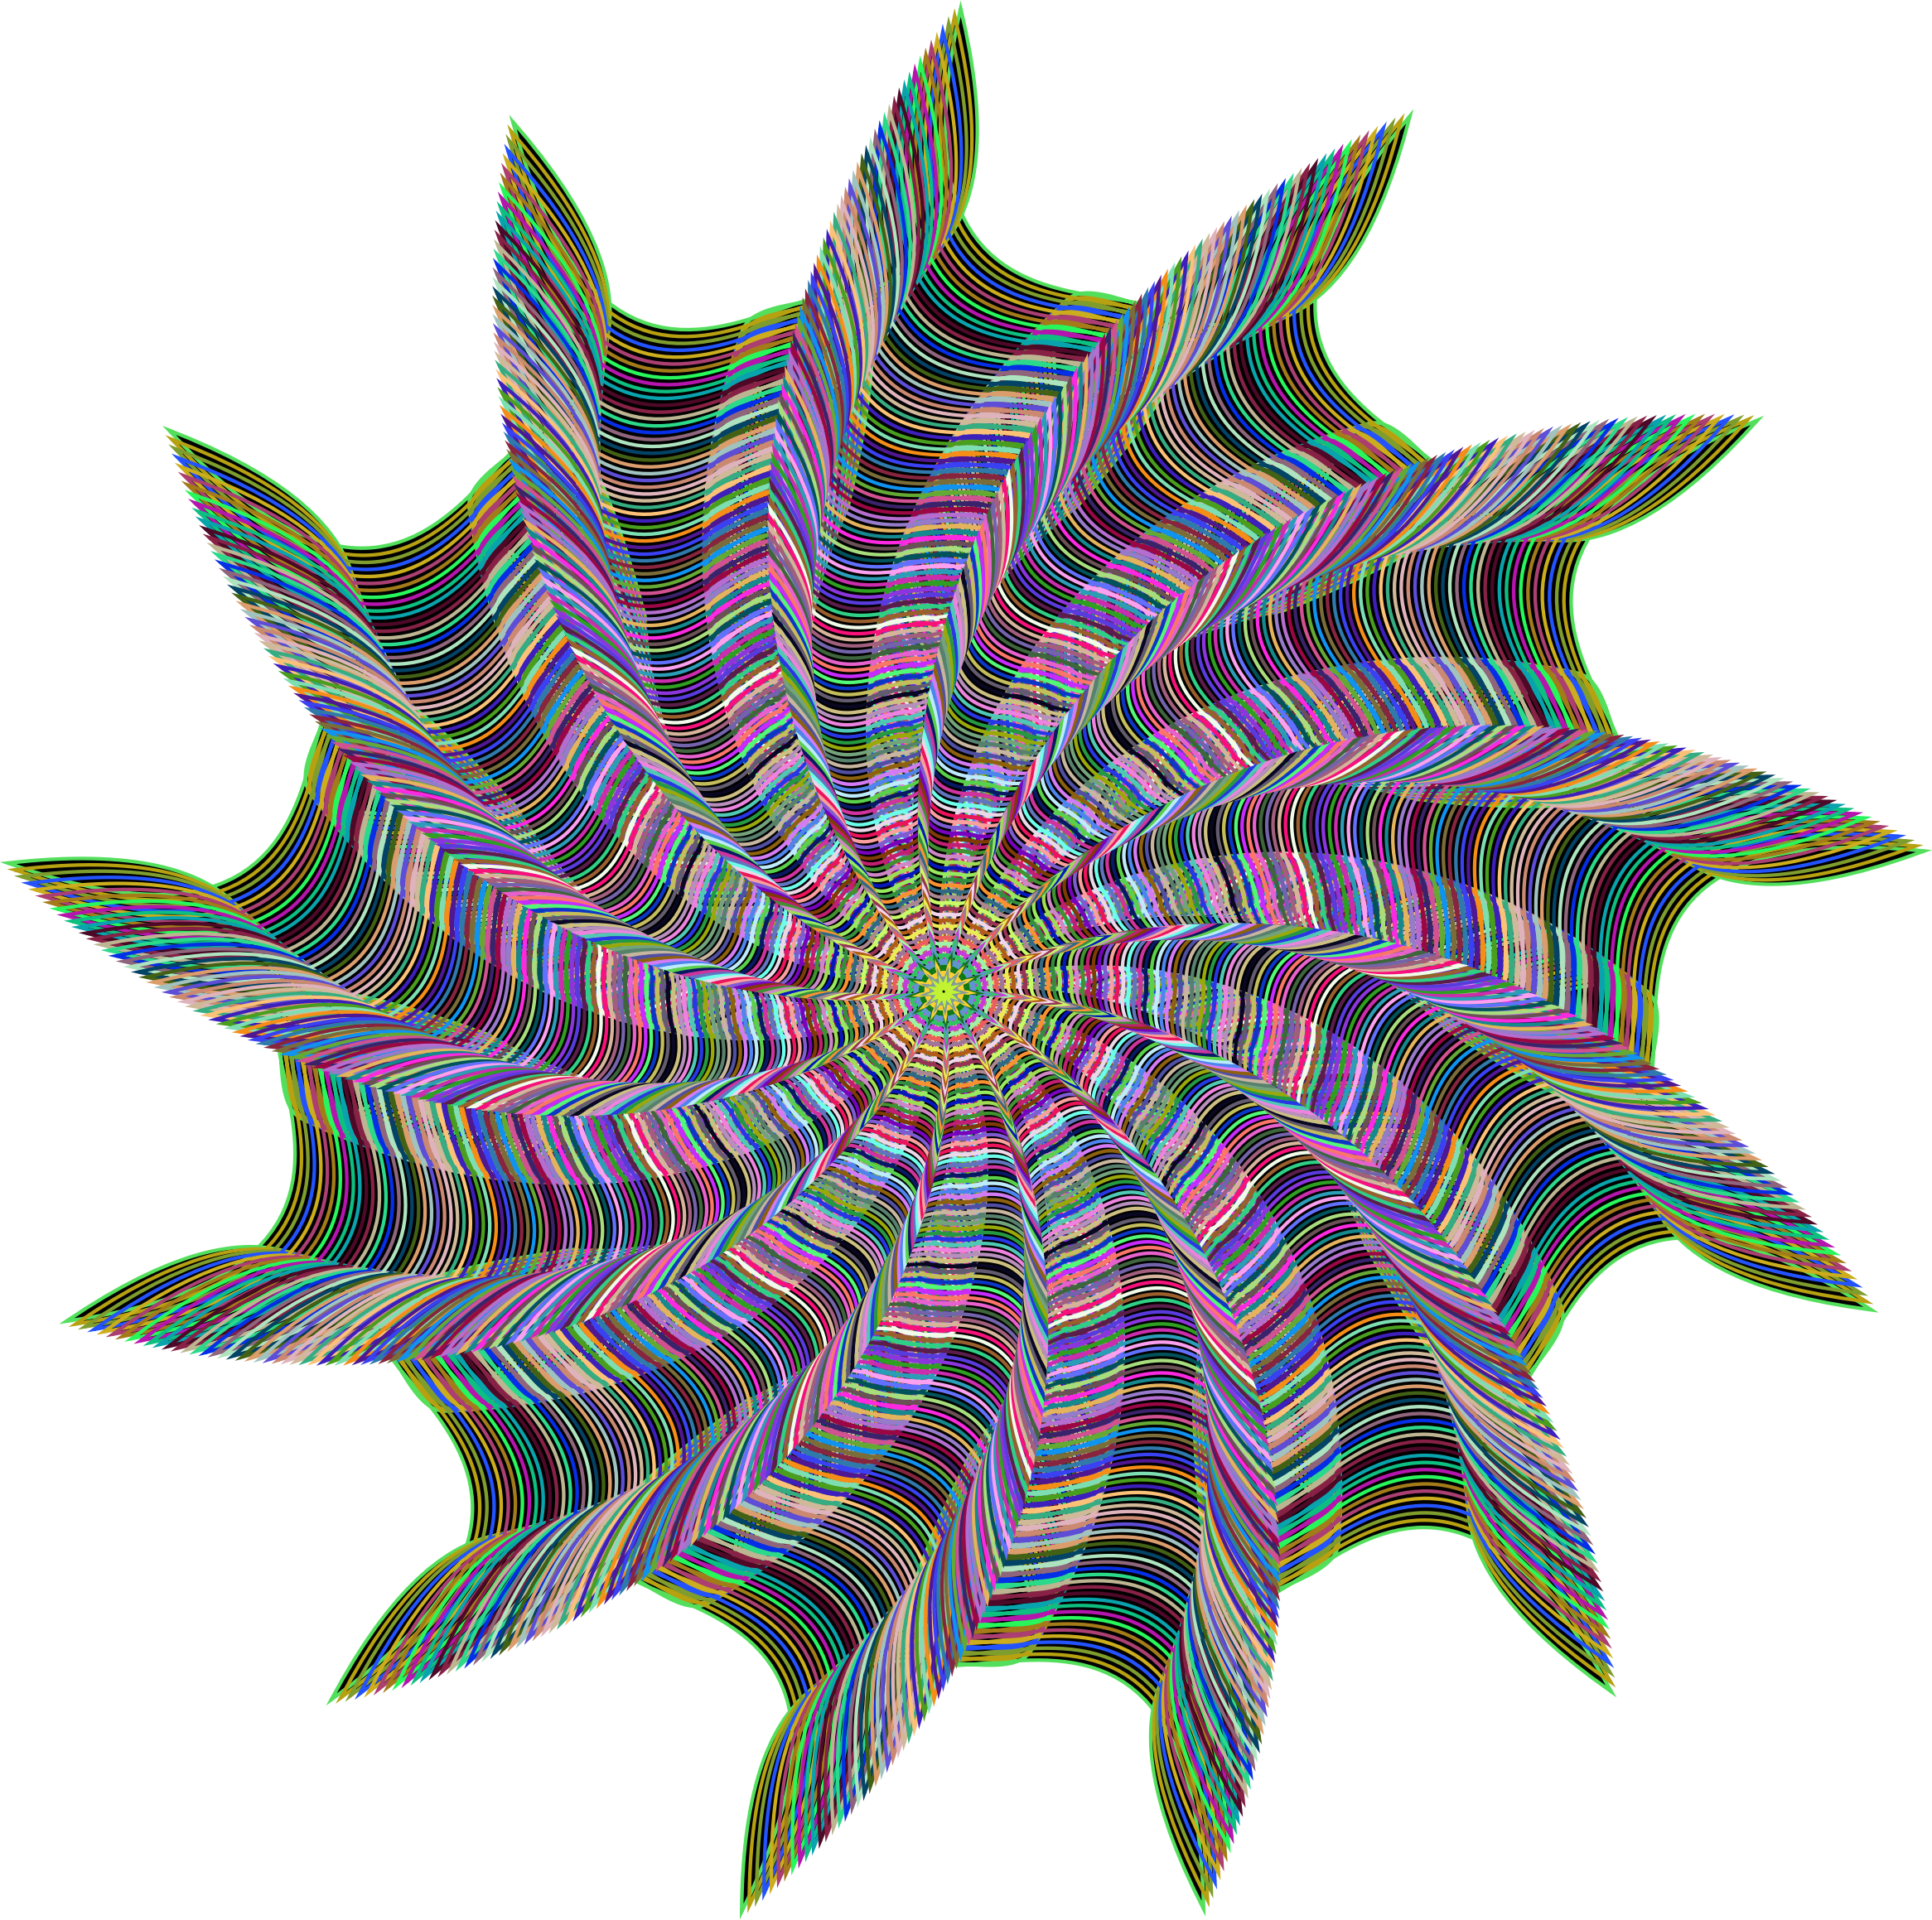 Prismatic Vortex Line Art by GDJ